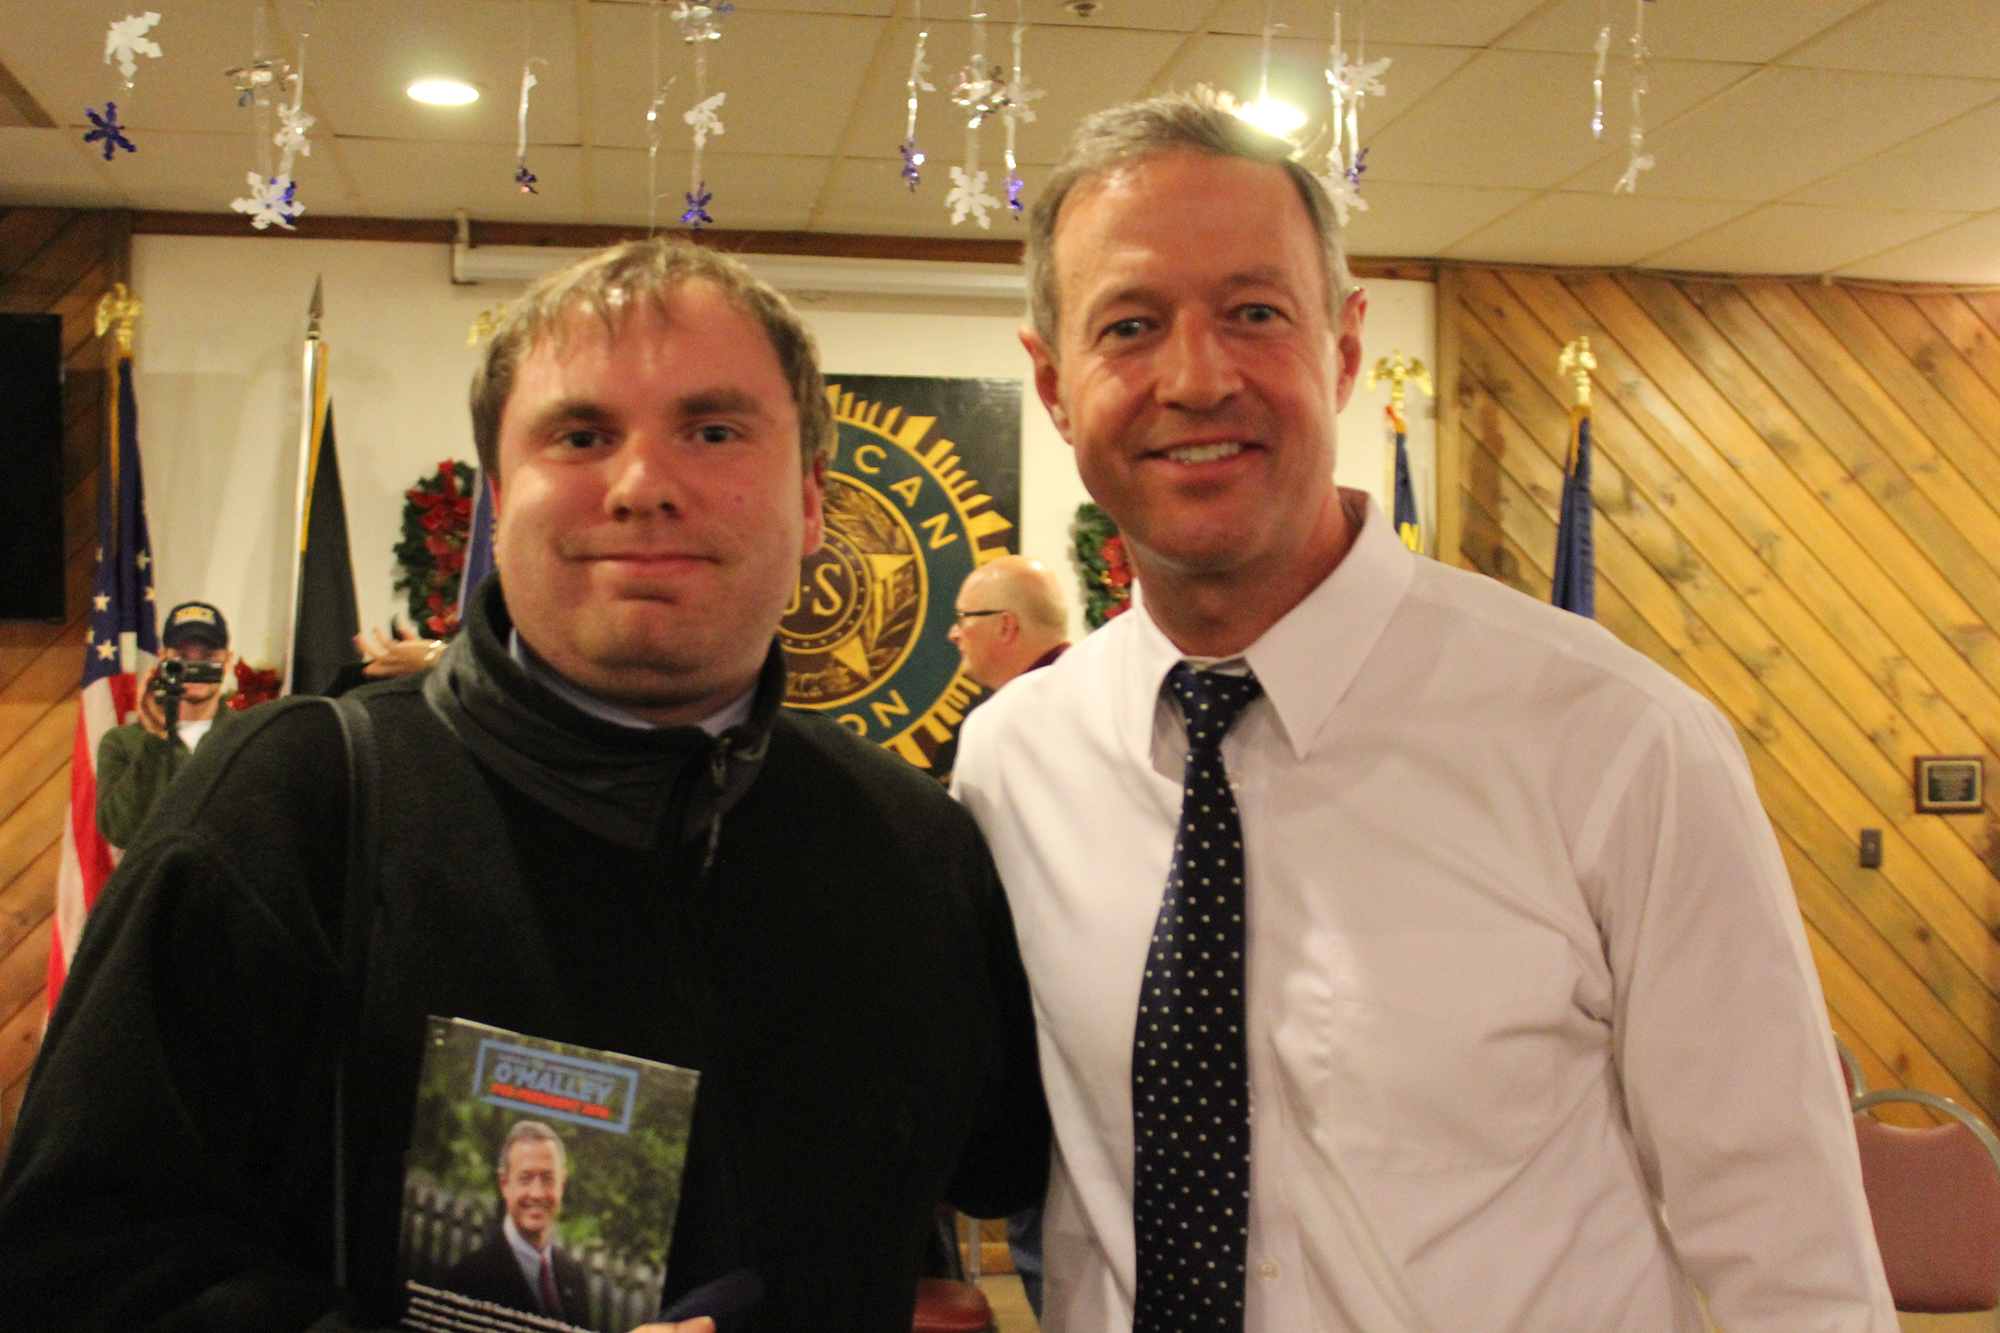 In January, James interviewed Gov. Martin O'Malley in New Hampshire.